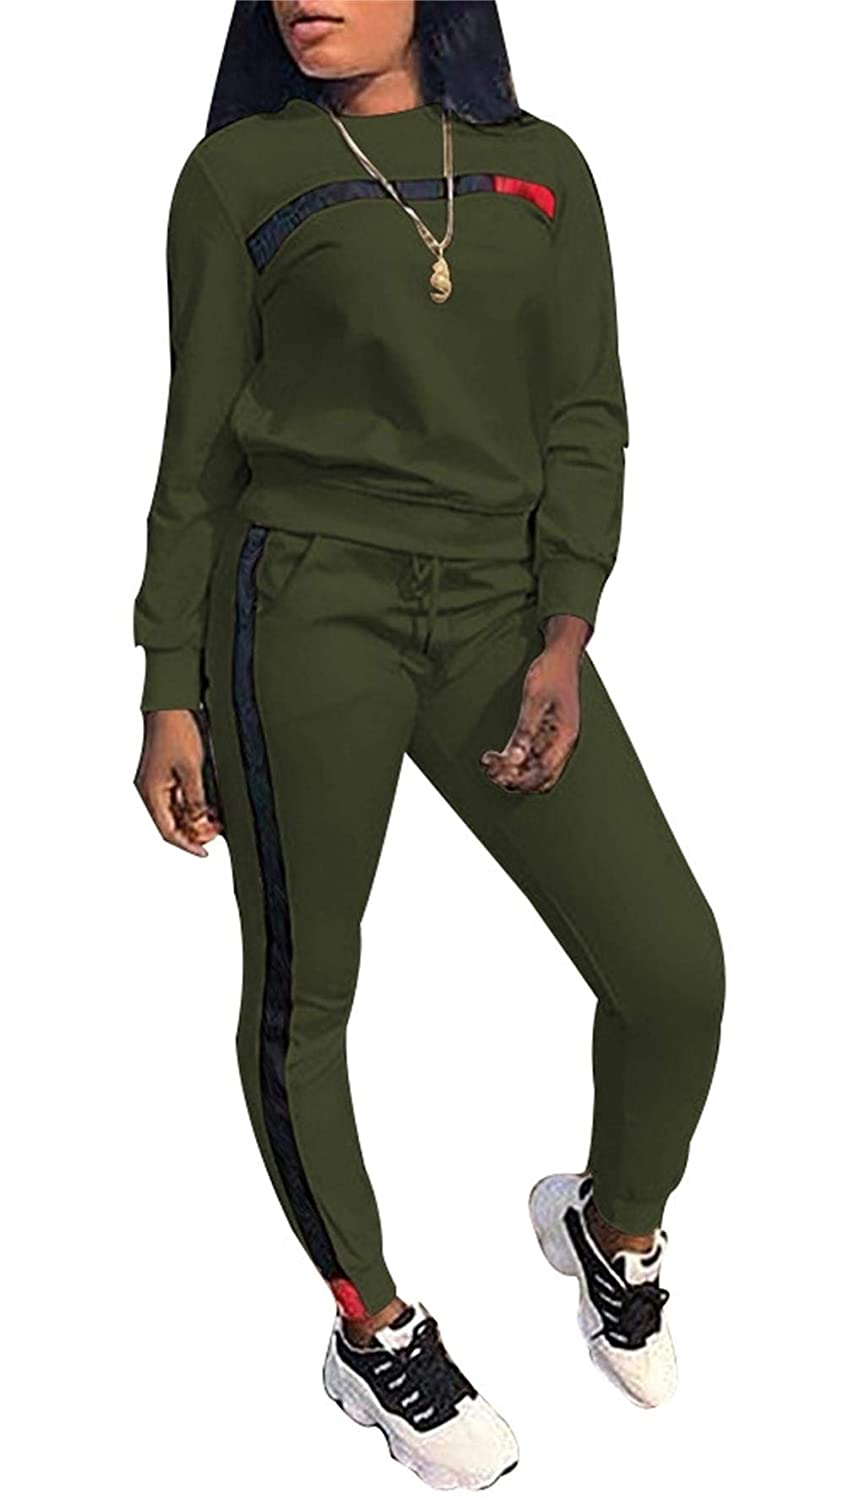 Womens Jogging Suits Pullover Hoodie Sweatshirt Hollow Out Skinny Long Pants Tracksuits Set 2 Pieces Outfits